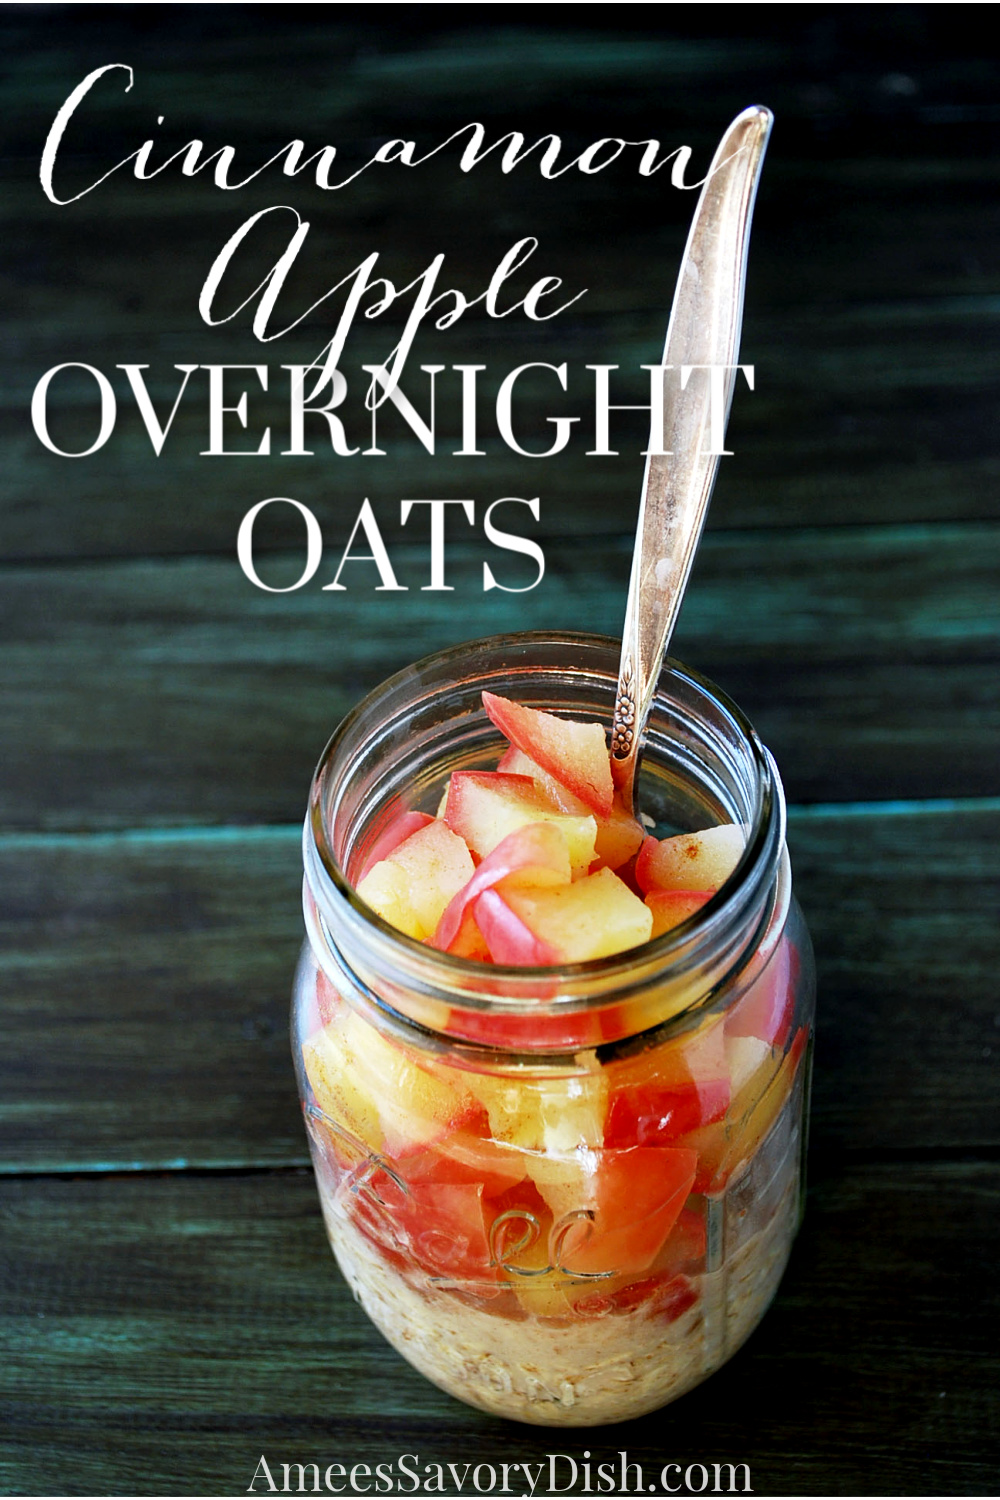 A simple and easy recipe for cinnamon apple overnight oats using microwave cooked apples, ground cinnamon, whole oats, and natural sweetener.#overnightoats #appleovernightoats #appleoatmeal #oatmeal via @Ameessavorydish